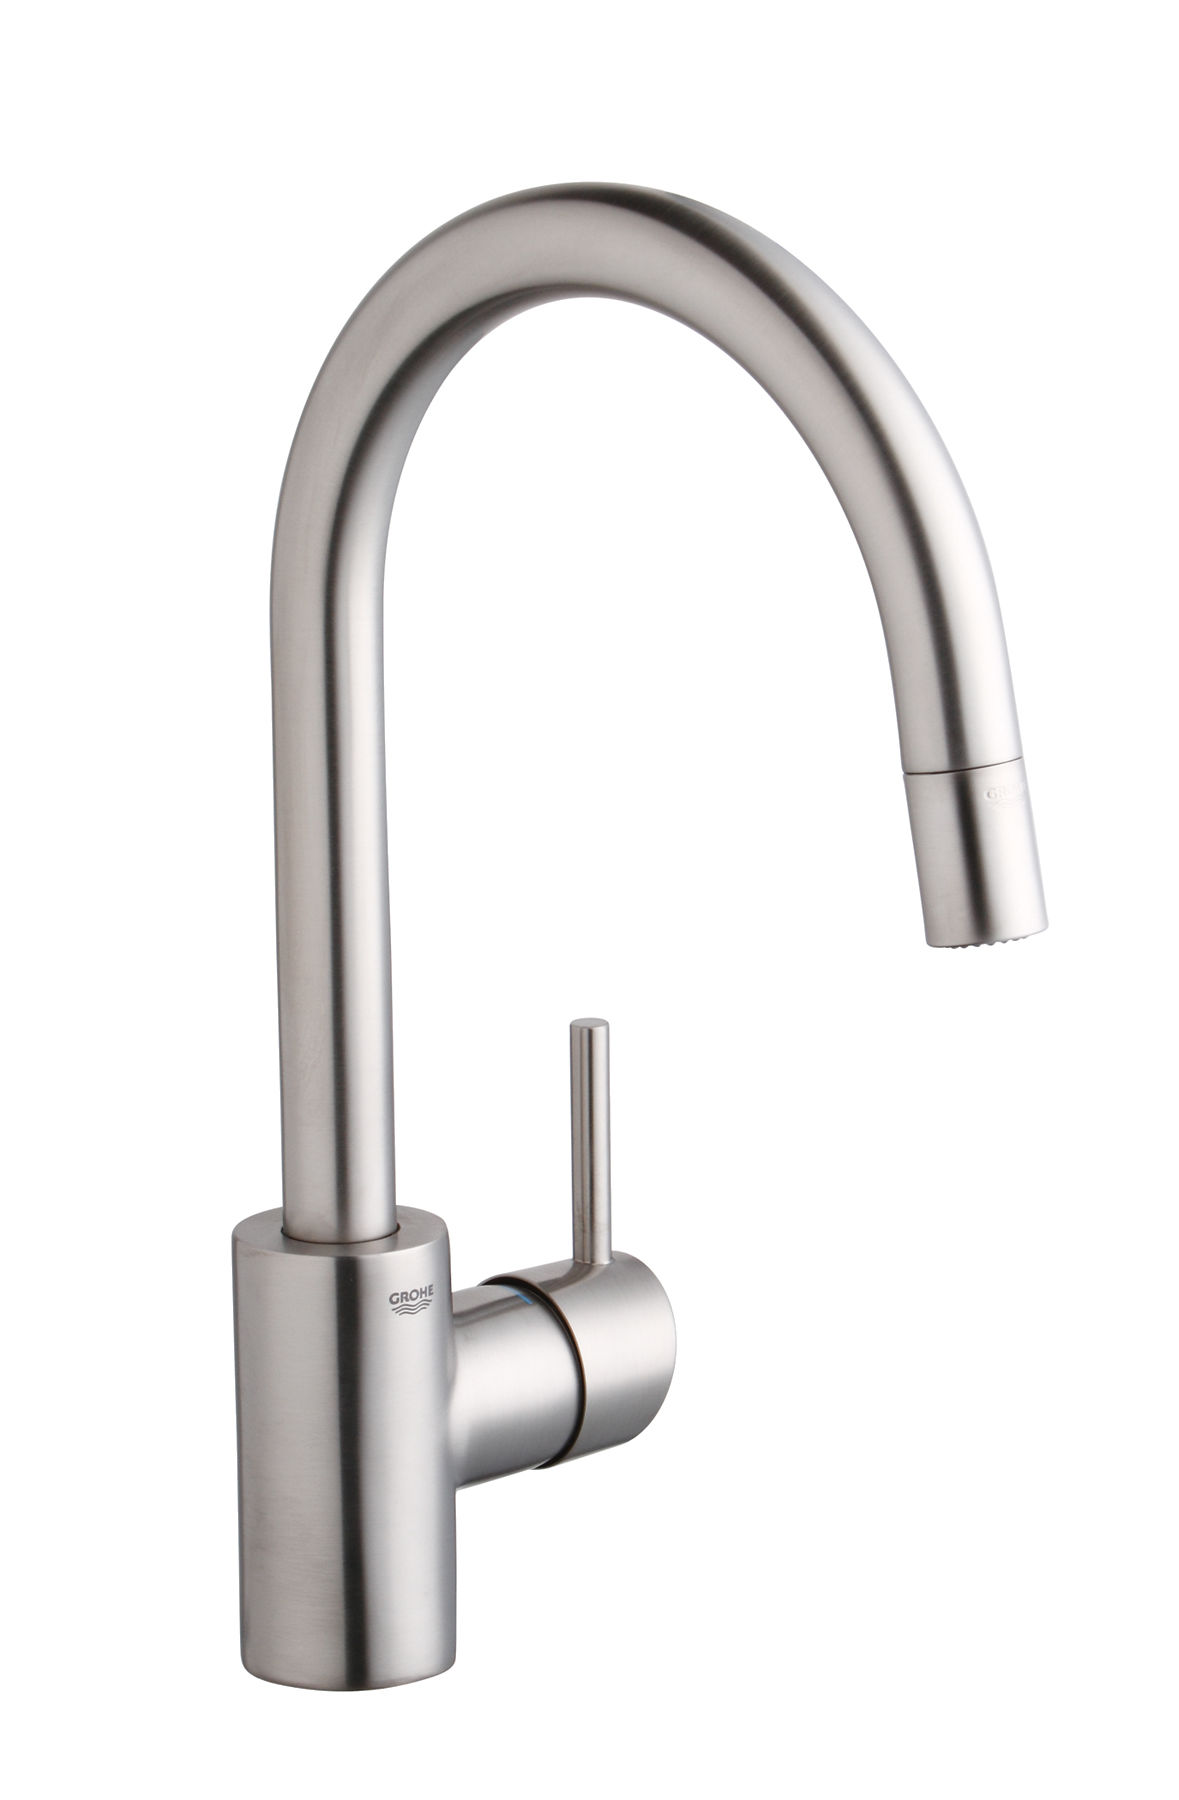 Merveilleux Grohe 32665DC1 SuperSteel Concetto Pull Down High Arc Kitchen Faucet With  Dual Function Locking Sprayer   Faucet.com